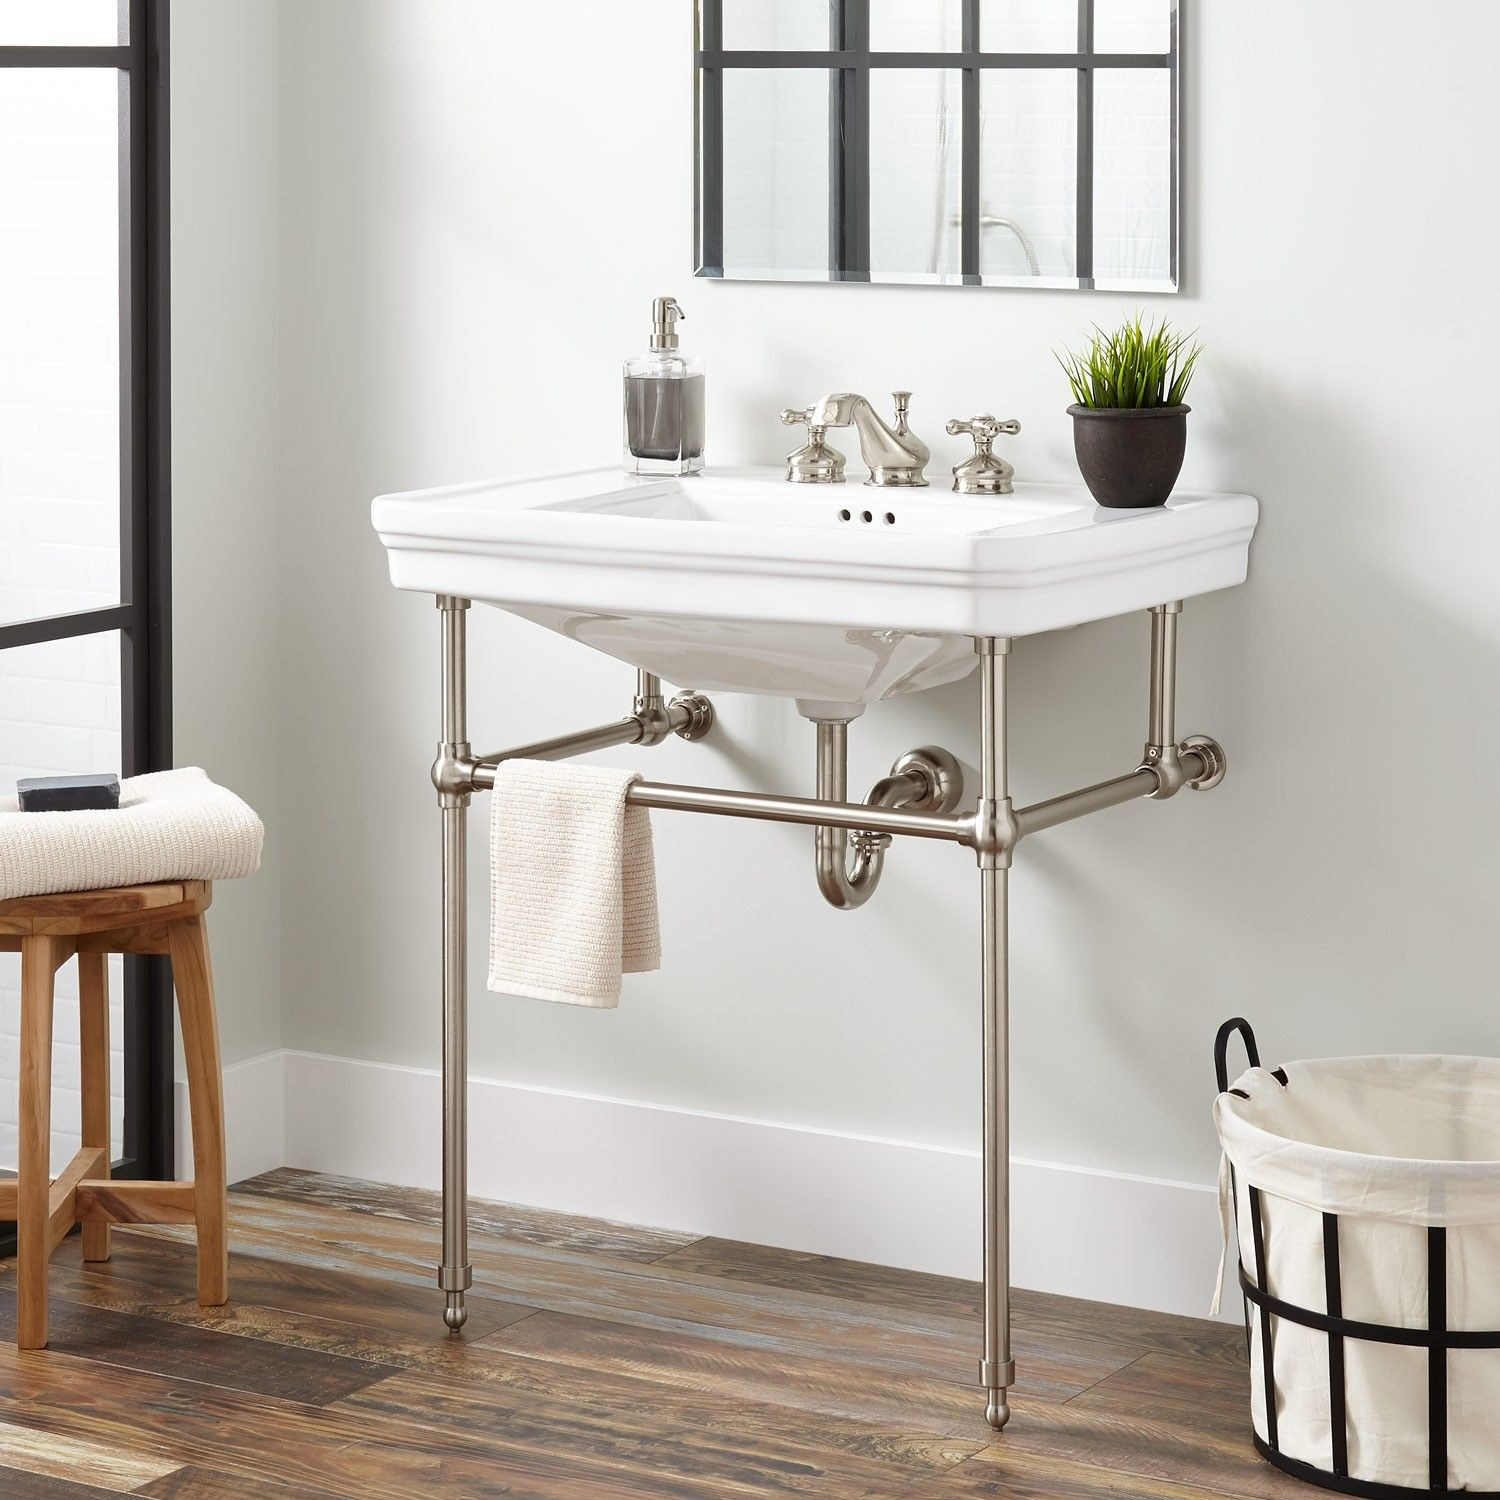 Mason Porcelain Console Sink With Brass Stand Bathroom Sinks